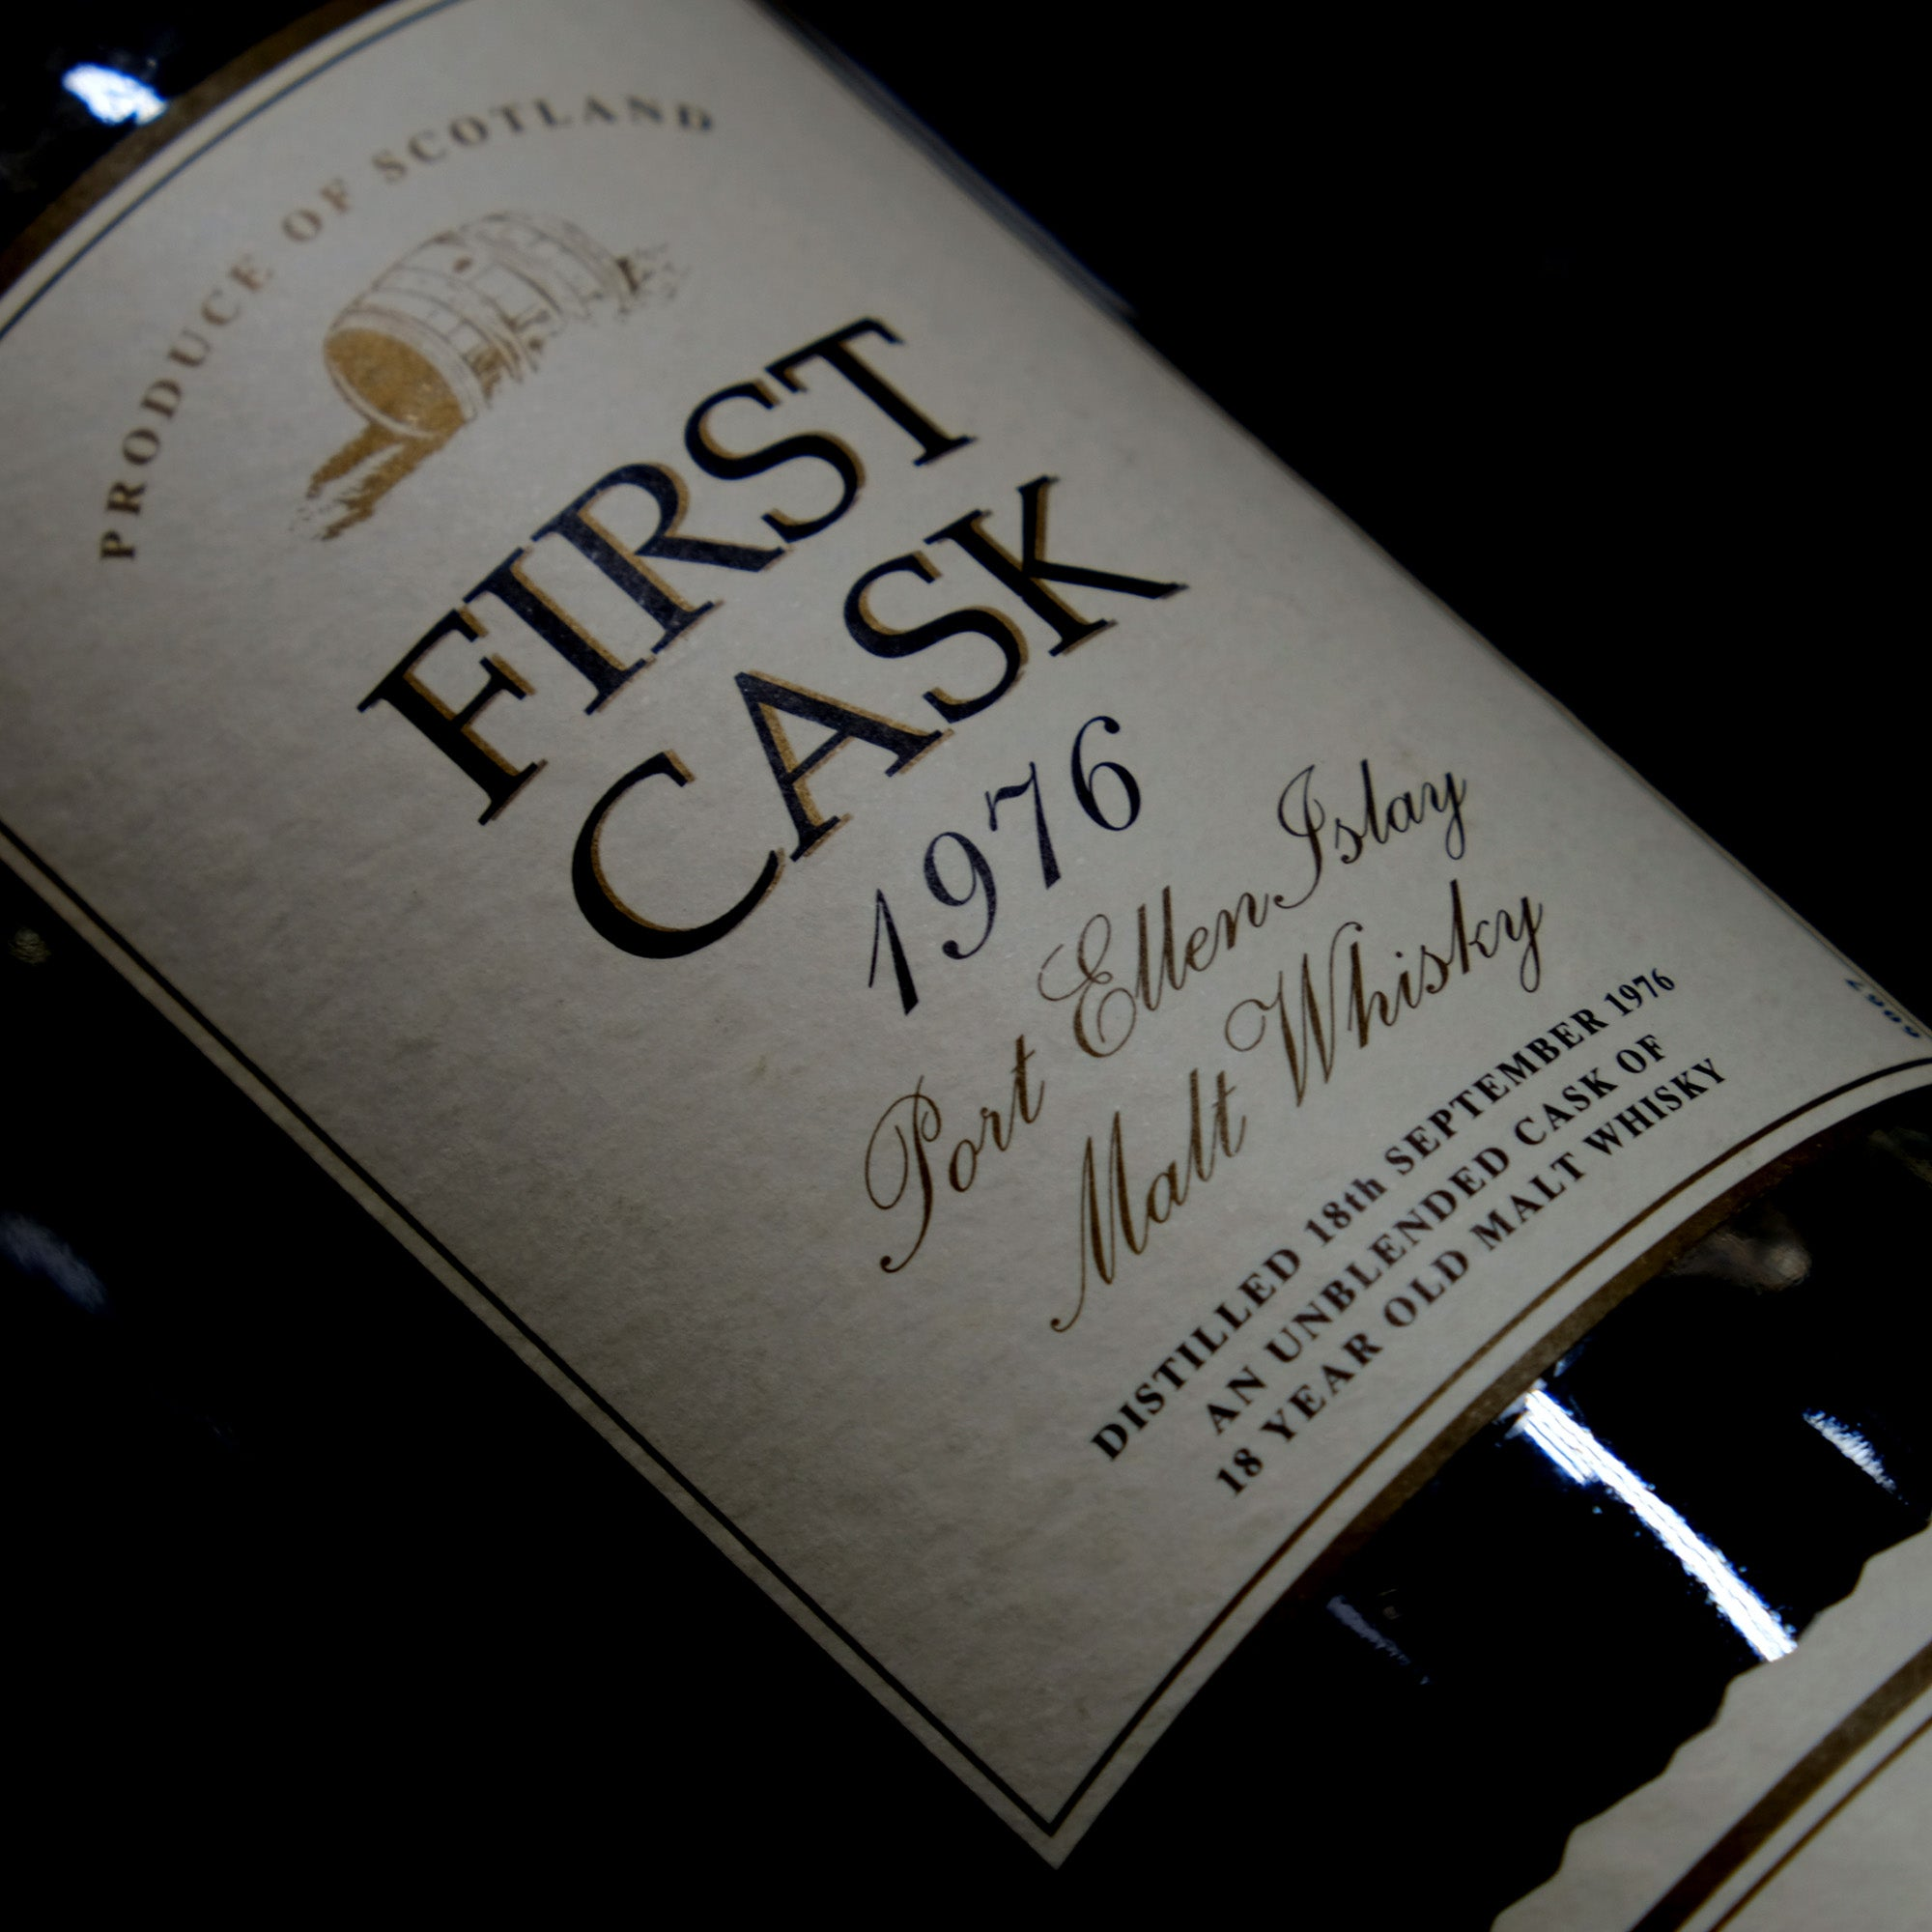 Part 1 'First Cask' Whisky Tasting - Old & Rare With Whisky-Online Auctions